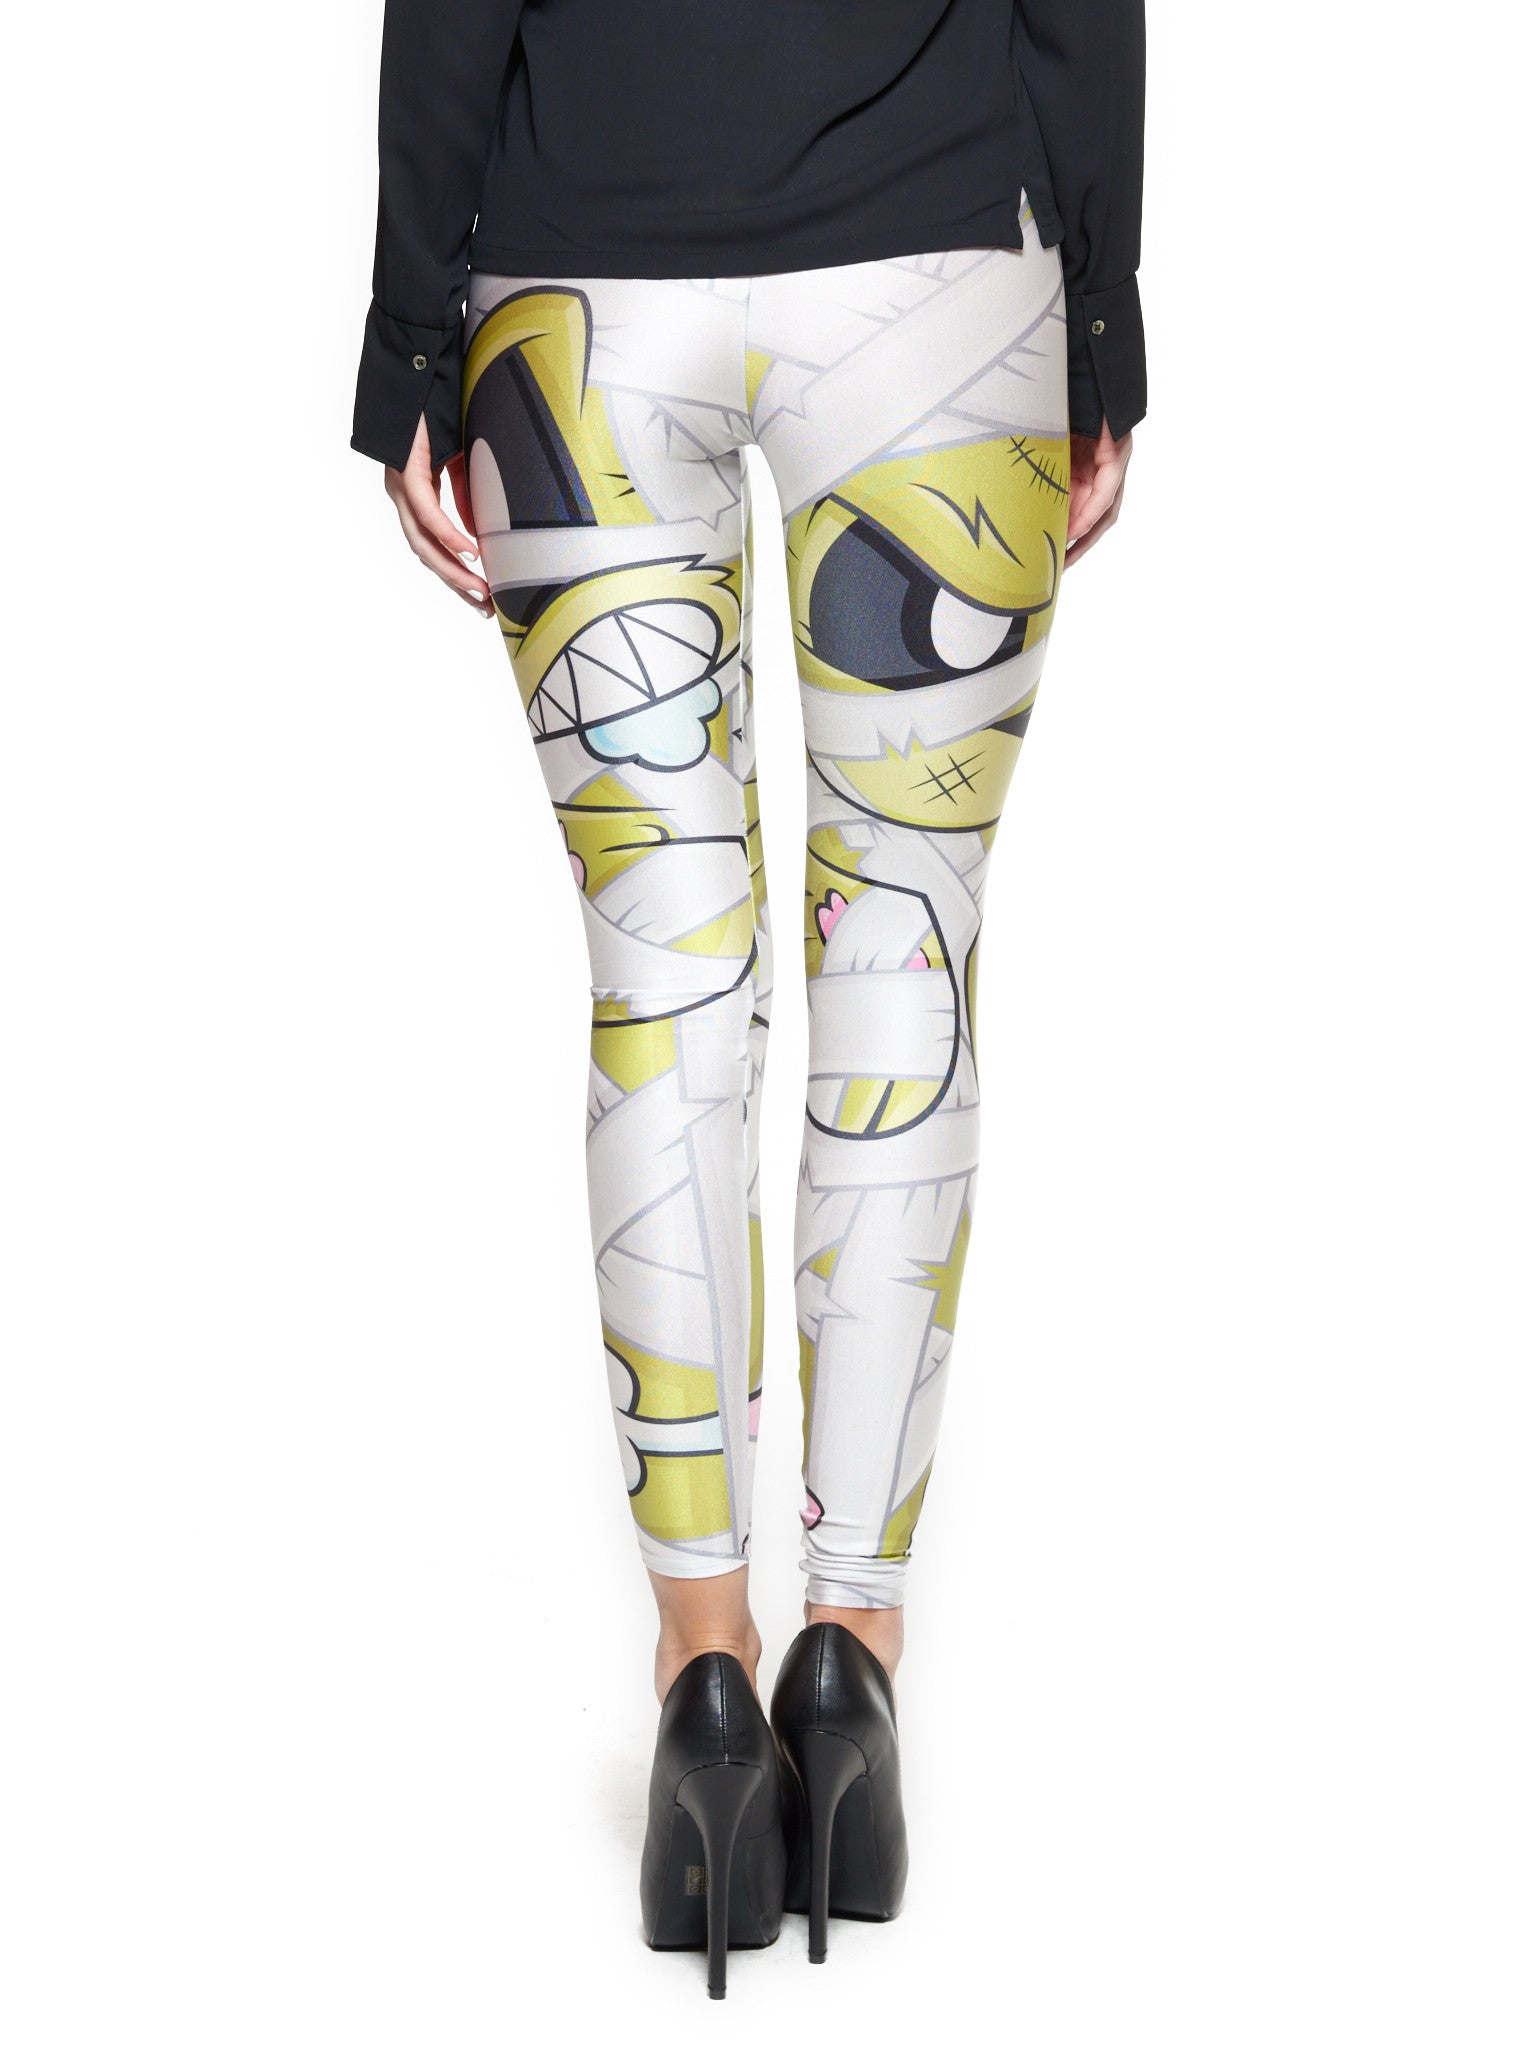 Mummy Bunny Queen West Leggings - Nuvango  - 3